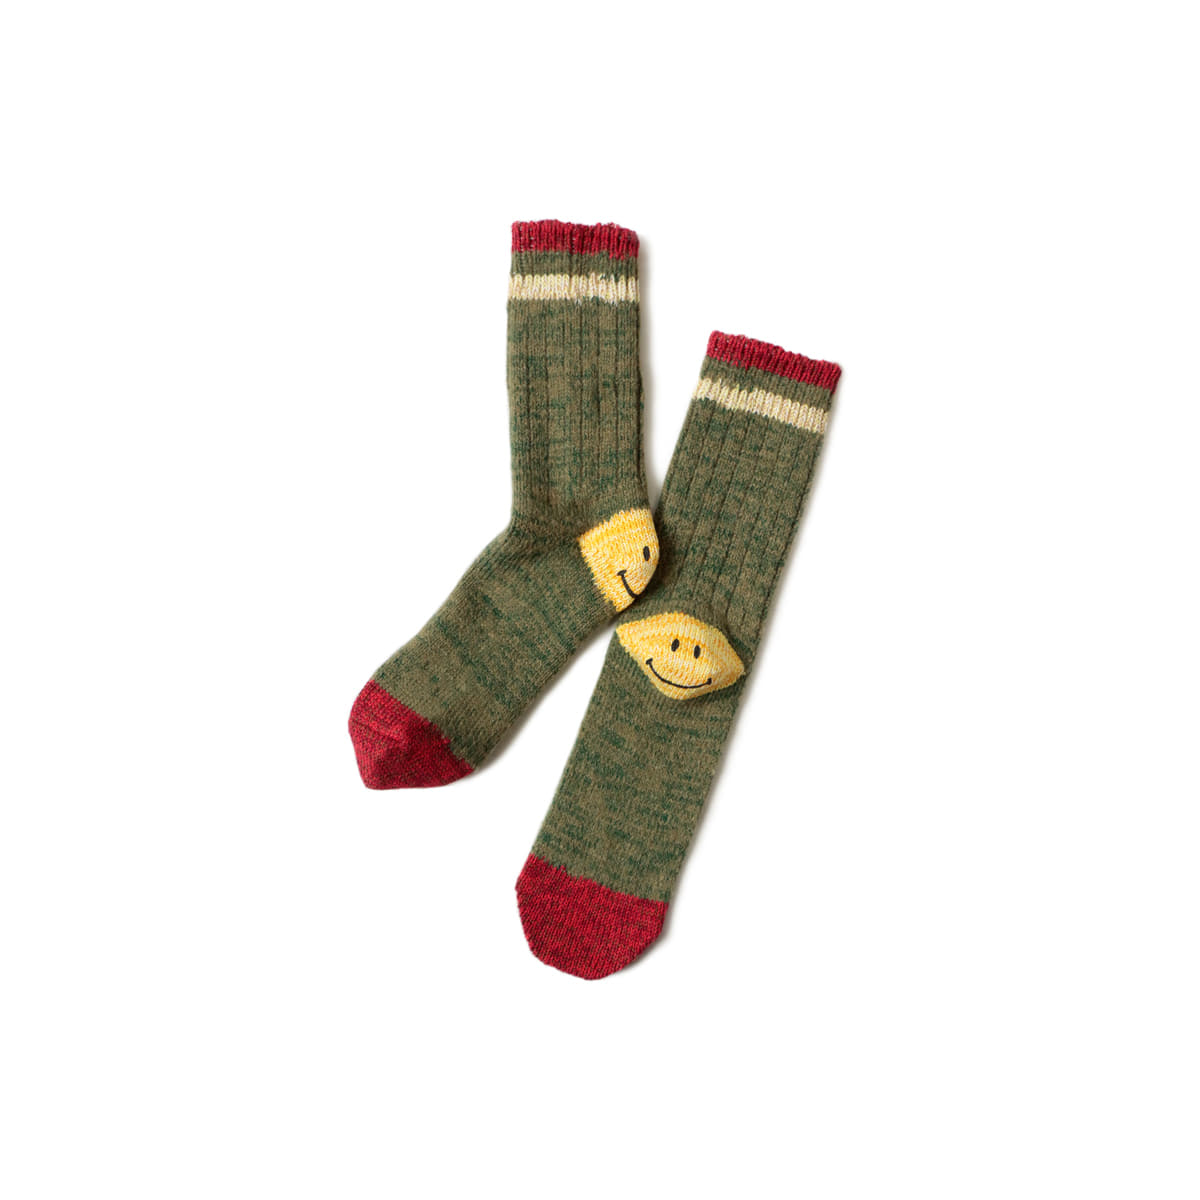 [KAPITAL] 72 YARNS WOOL IVY SMILE SOCKS 'GREEN'